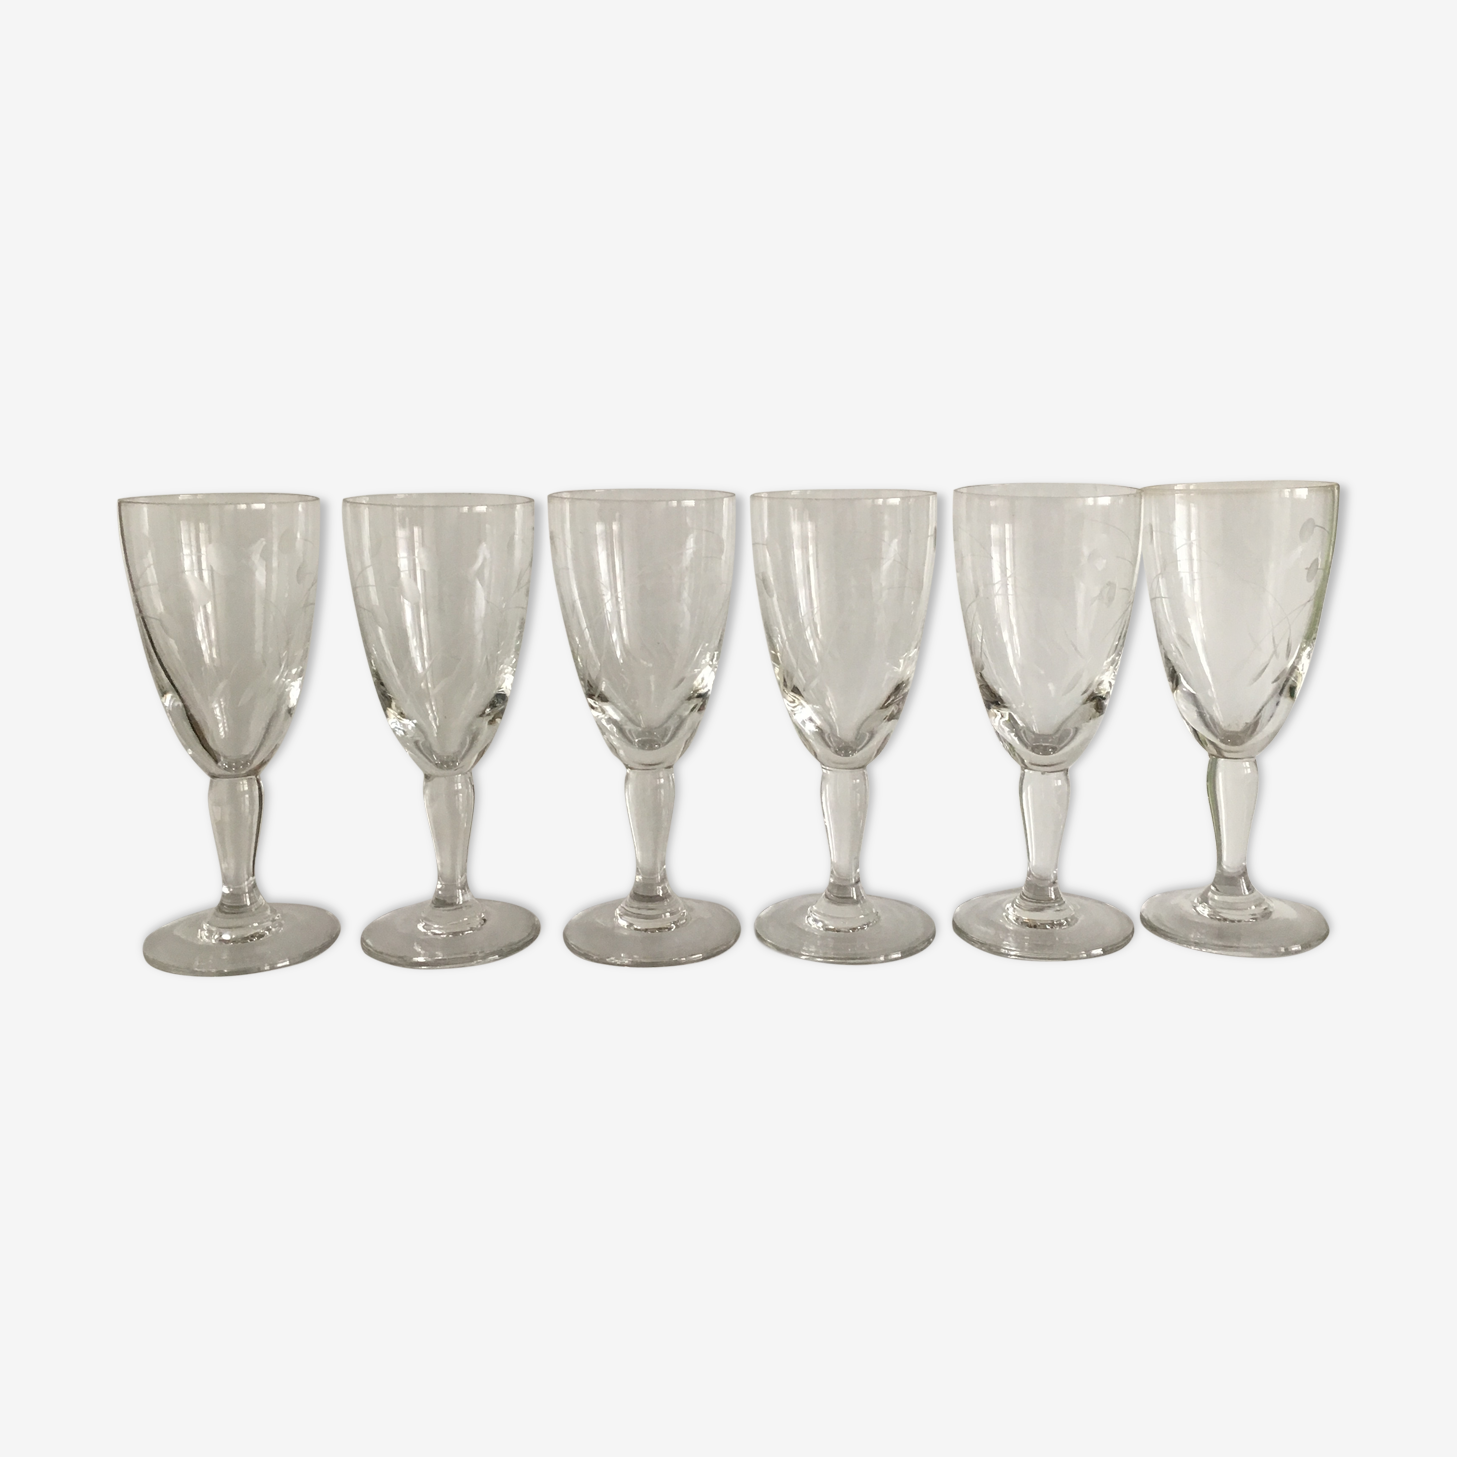 Set of 6 wine glasses etched on foot